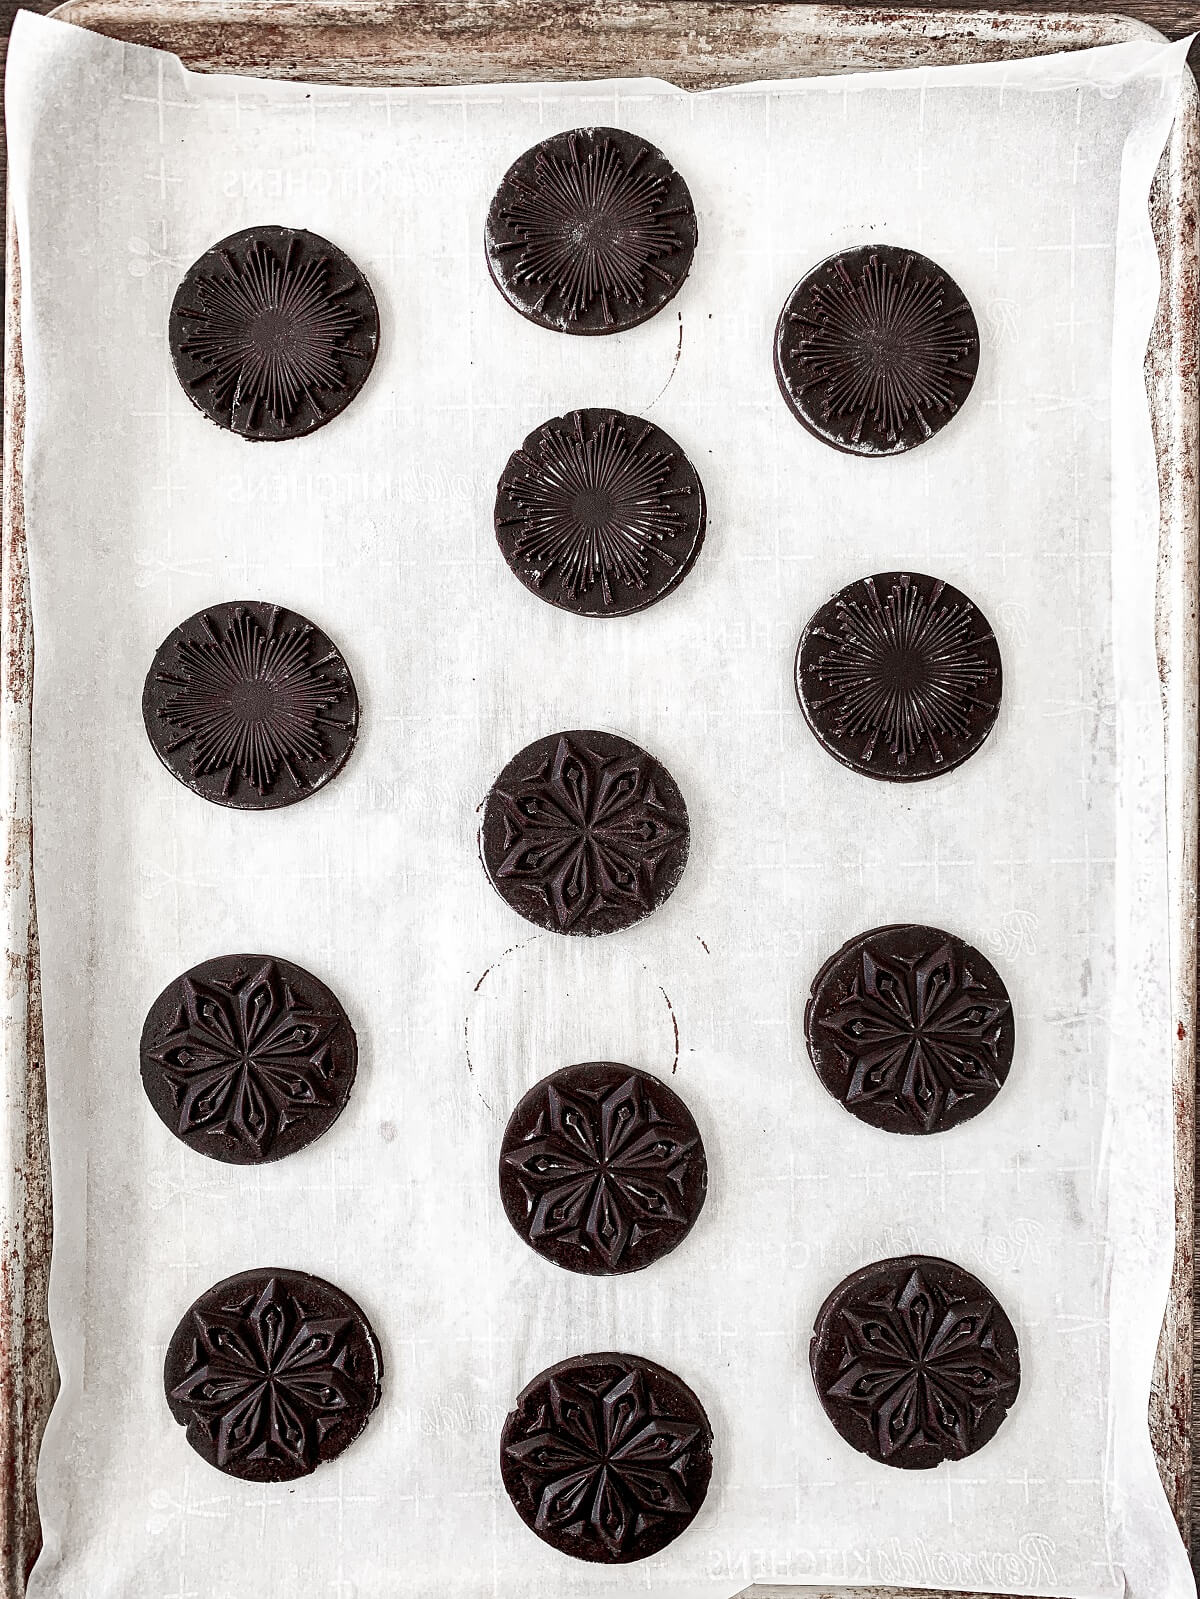 Unbaked stamped chocolate shortbread cookies on a baking sheet.